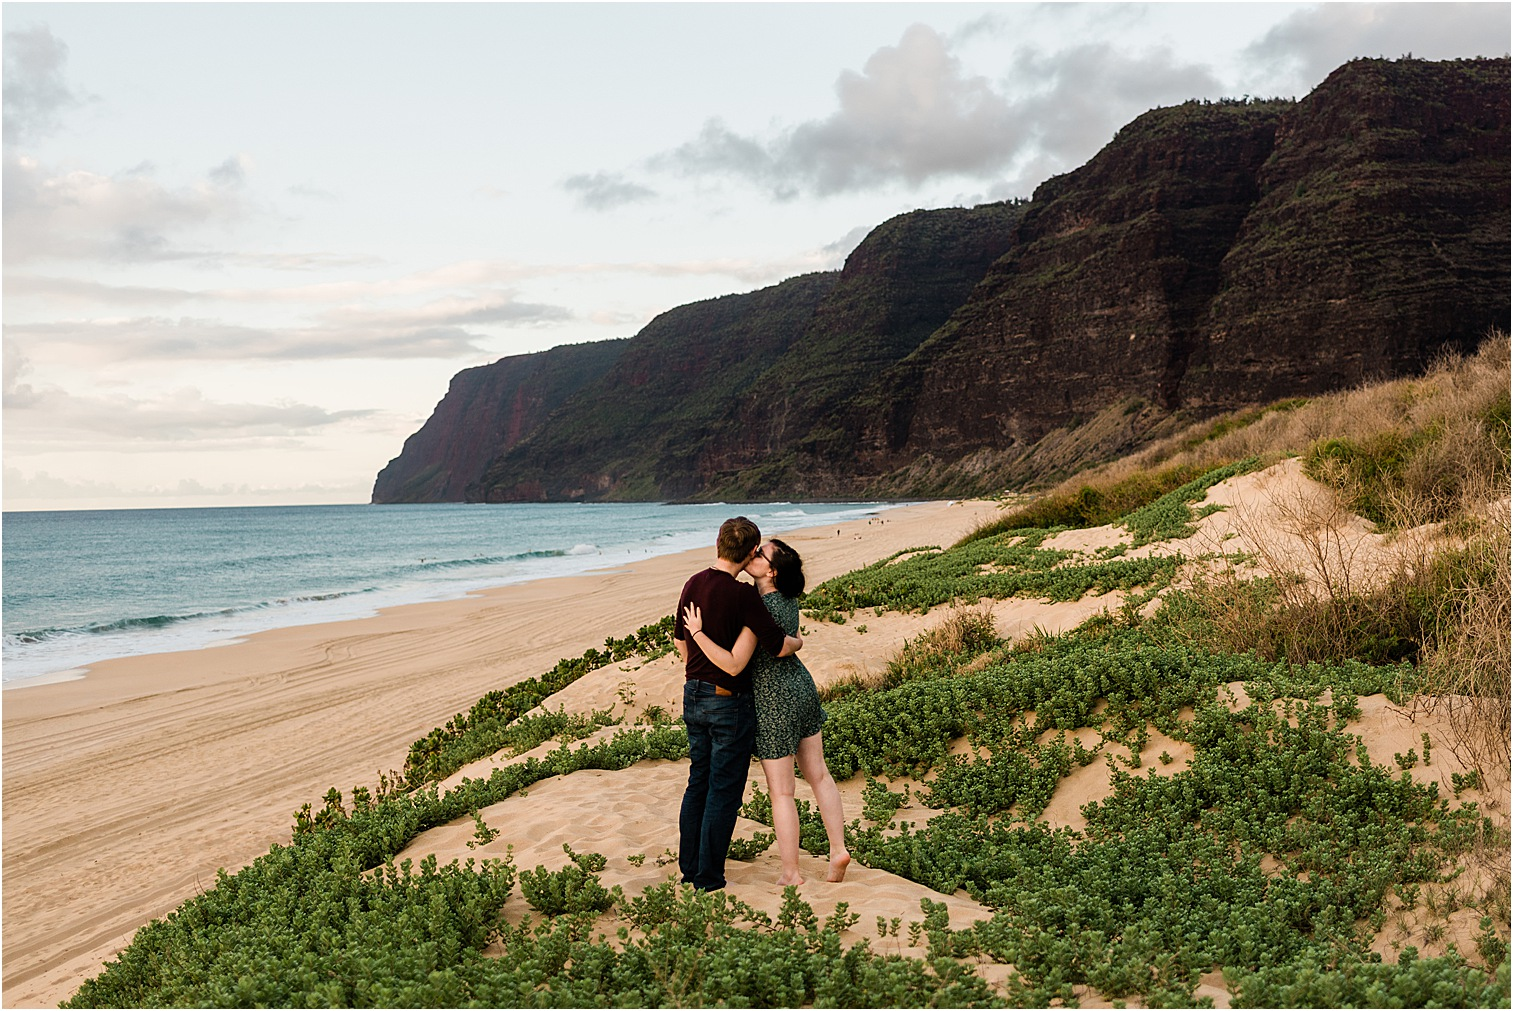 Couple at Polihale Beach at sunset. Image by Forthright Photo, Kauai Wedding Photographers